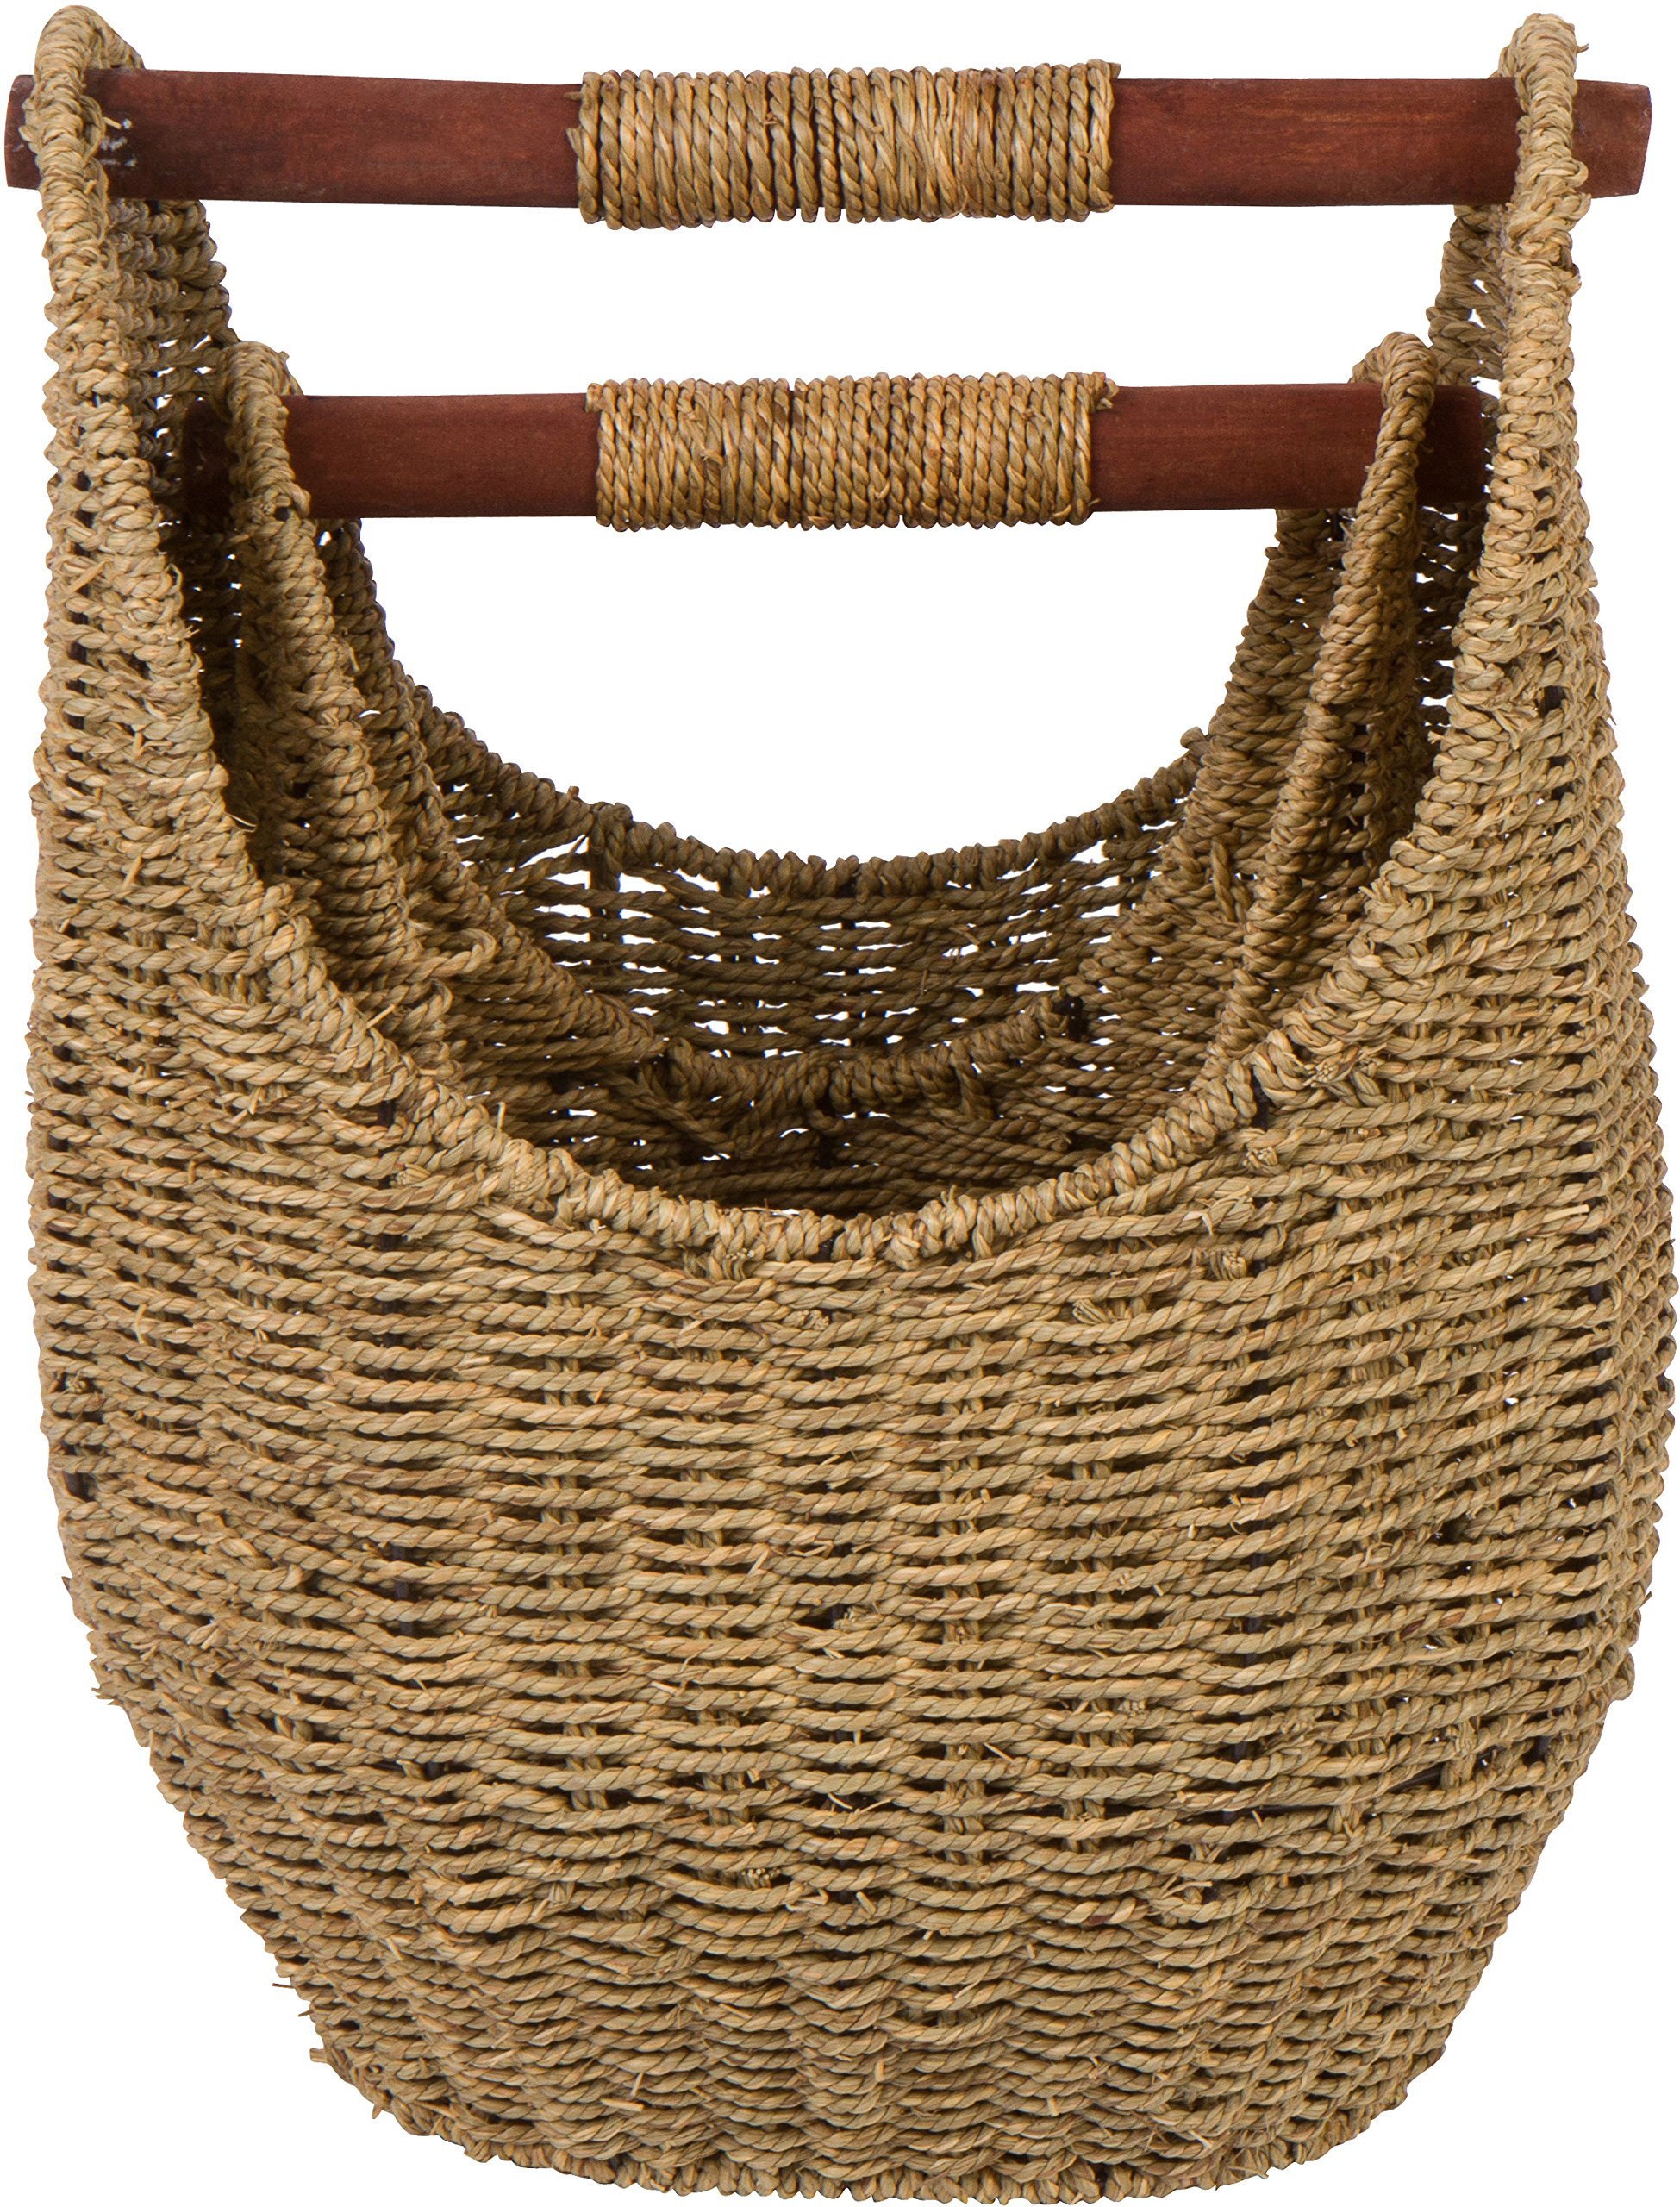 Trademark Innovations 15.7'' & 12.5'' Seagrass Baskets with Wooden Handles - Set of 2